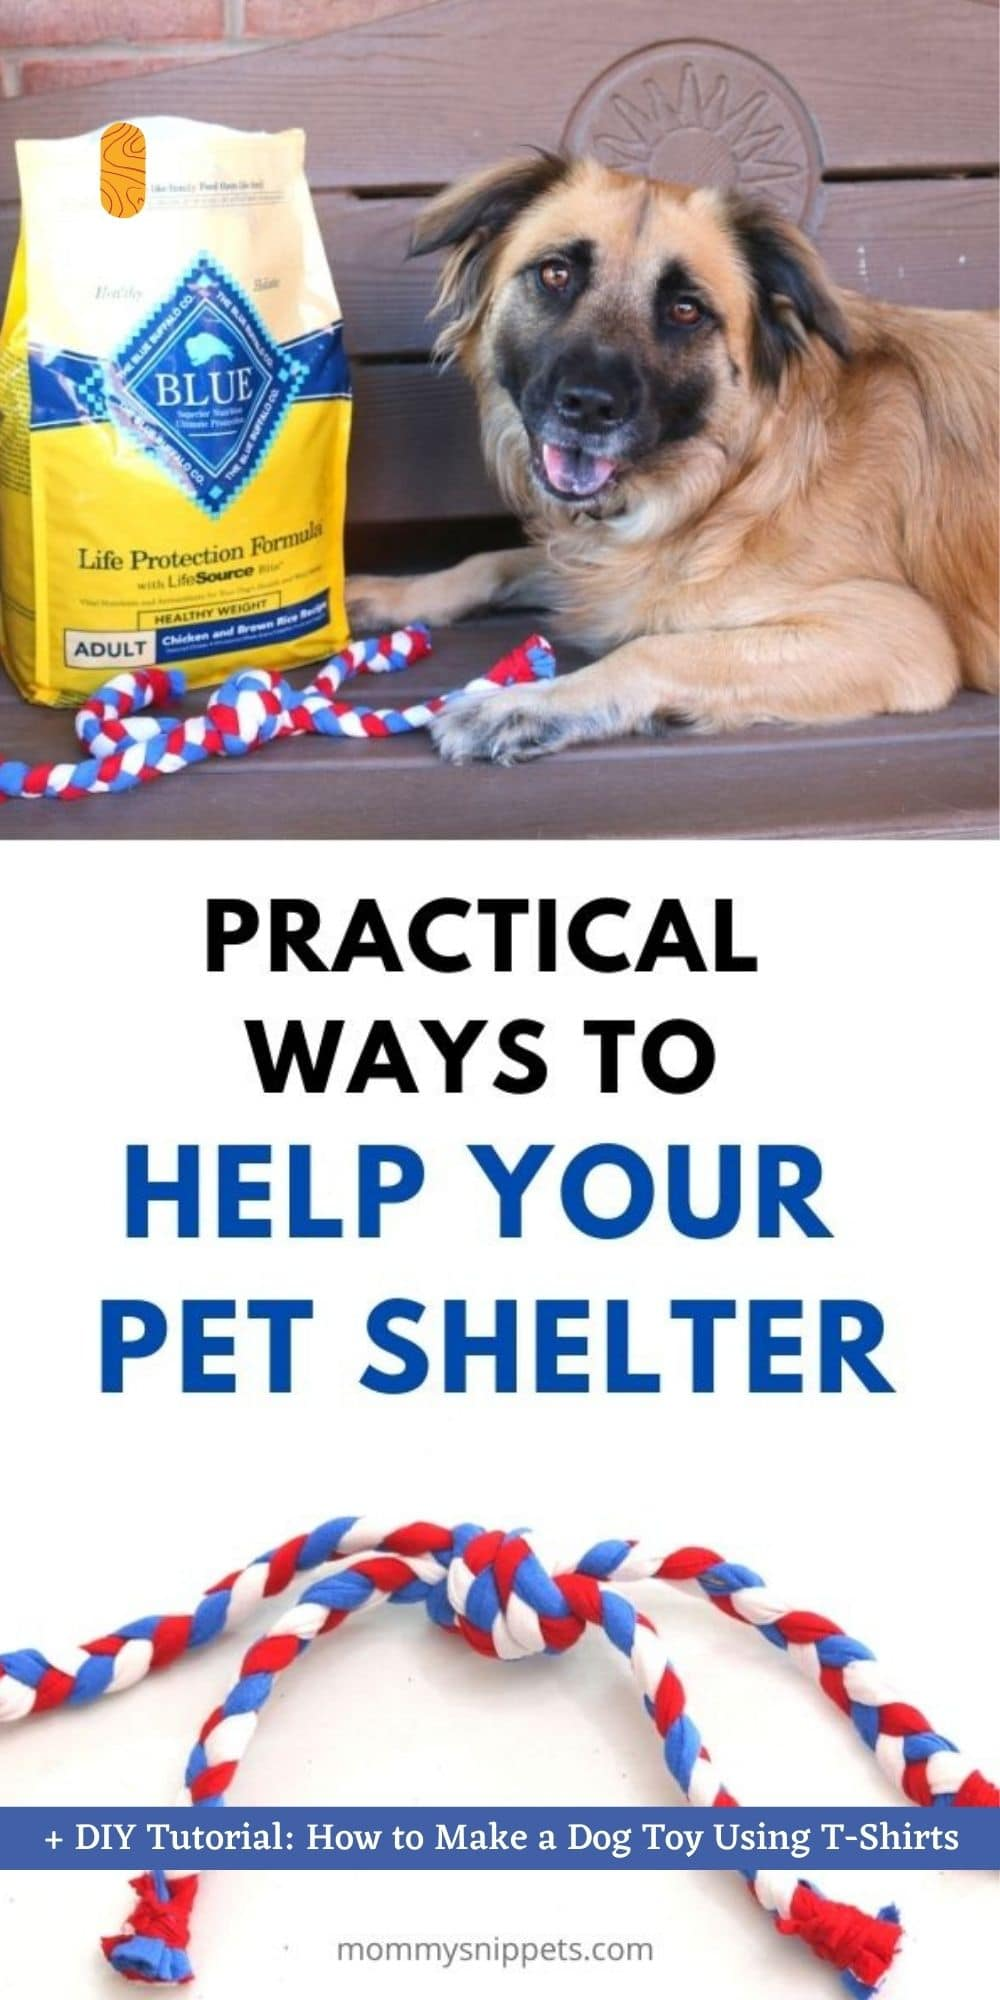 Practical Ways to Help Your Pet Shelter + DIY Tutorial: How to Make a Dog Toy Using T-shirts